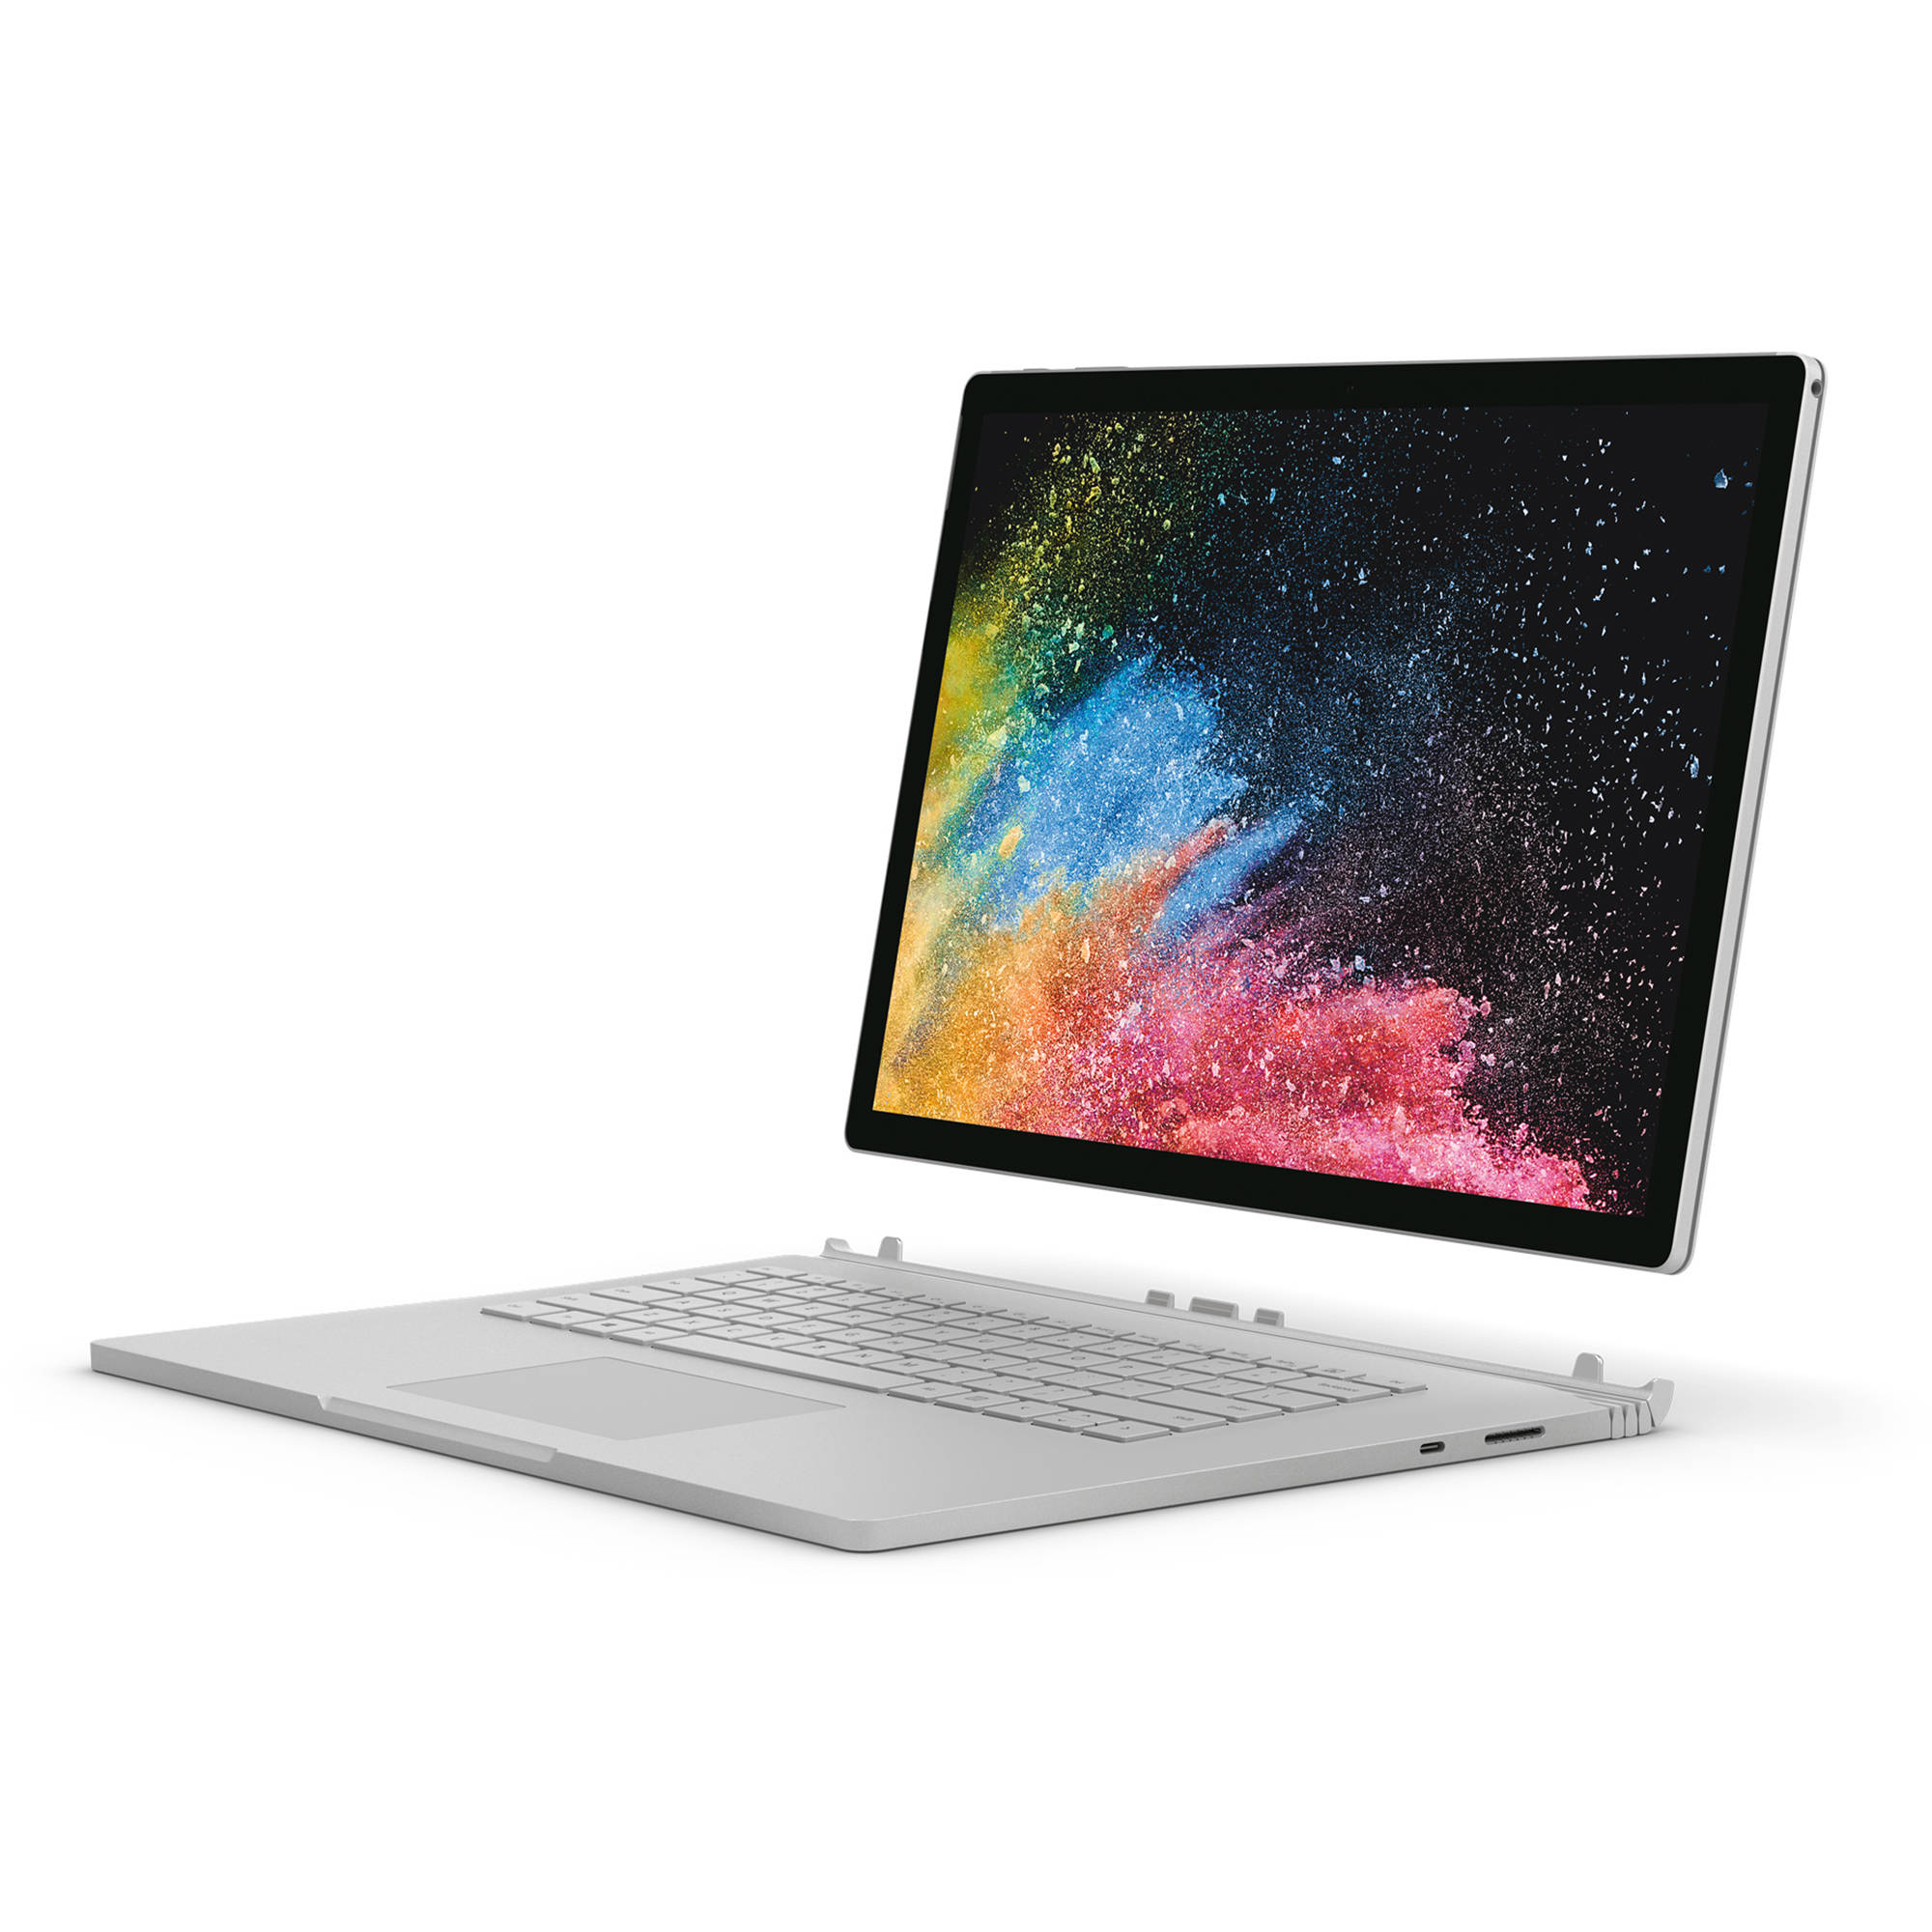 microsoft 15 surface book 2 multi touch 2 in 1 notebook